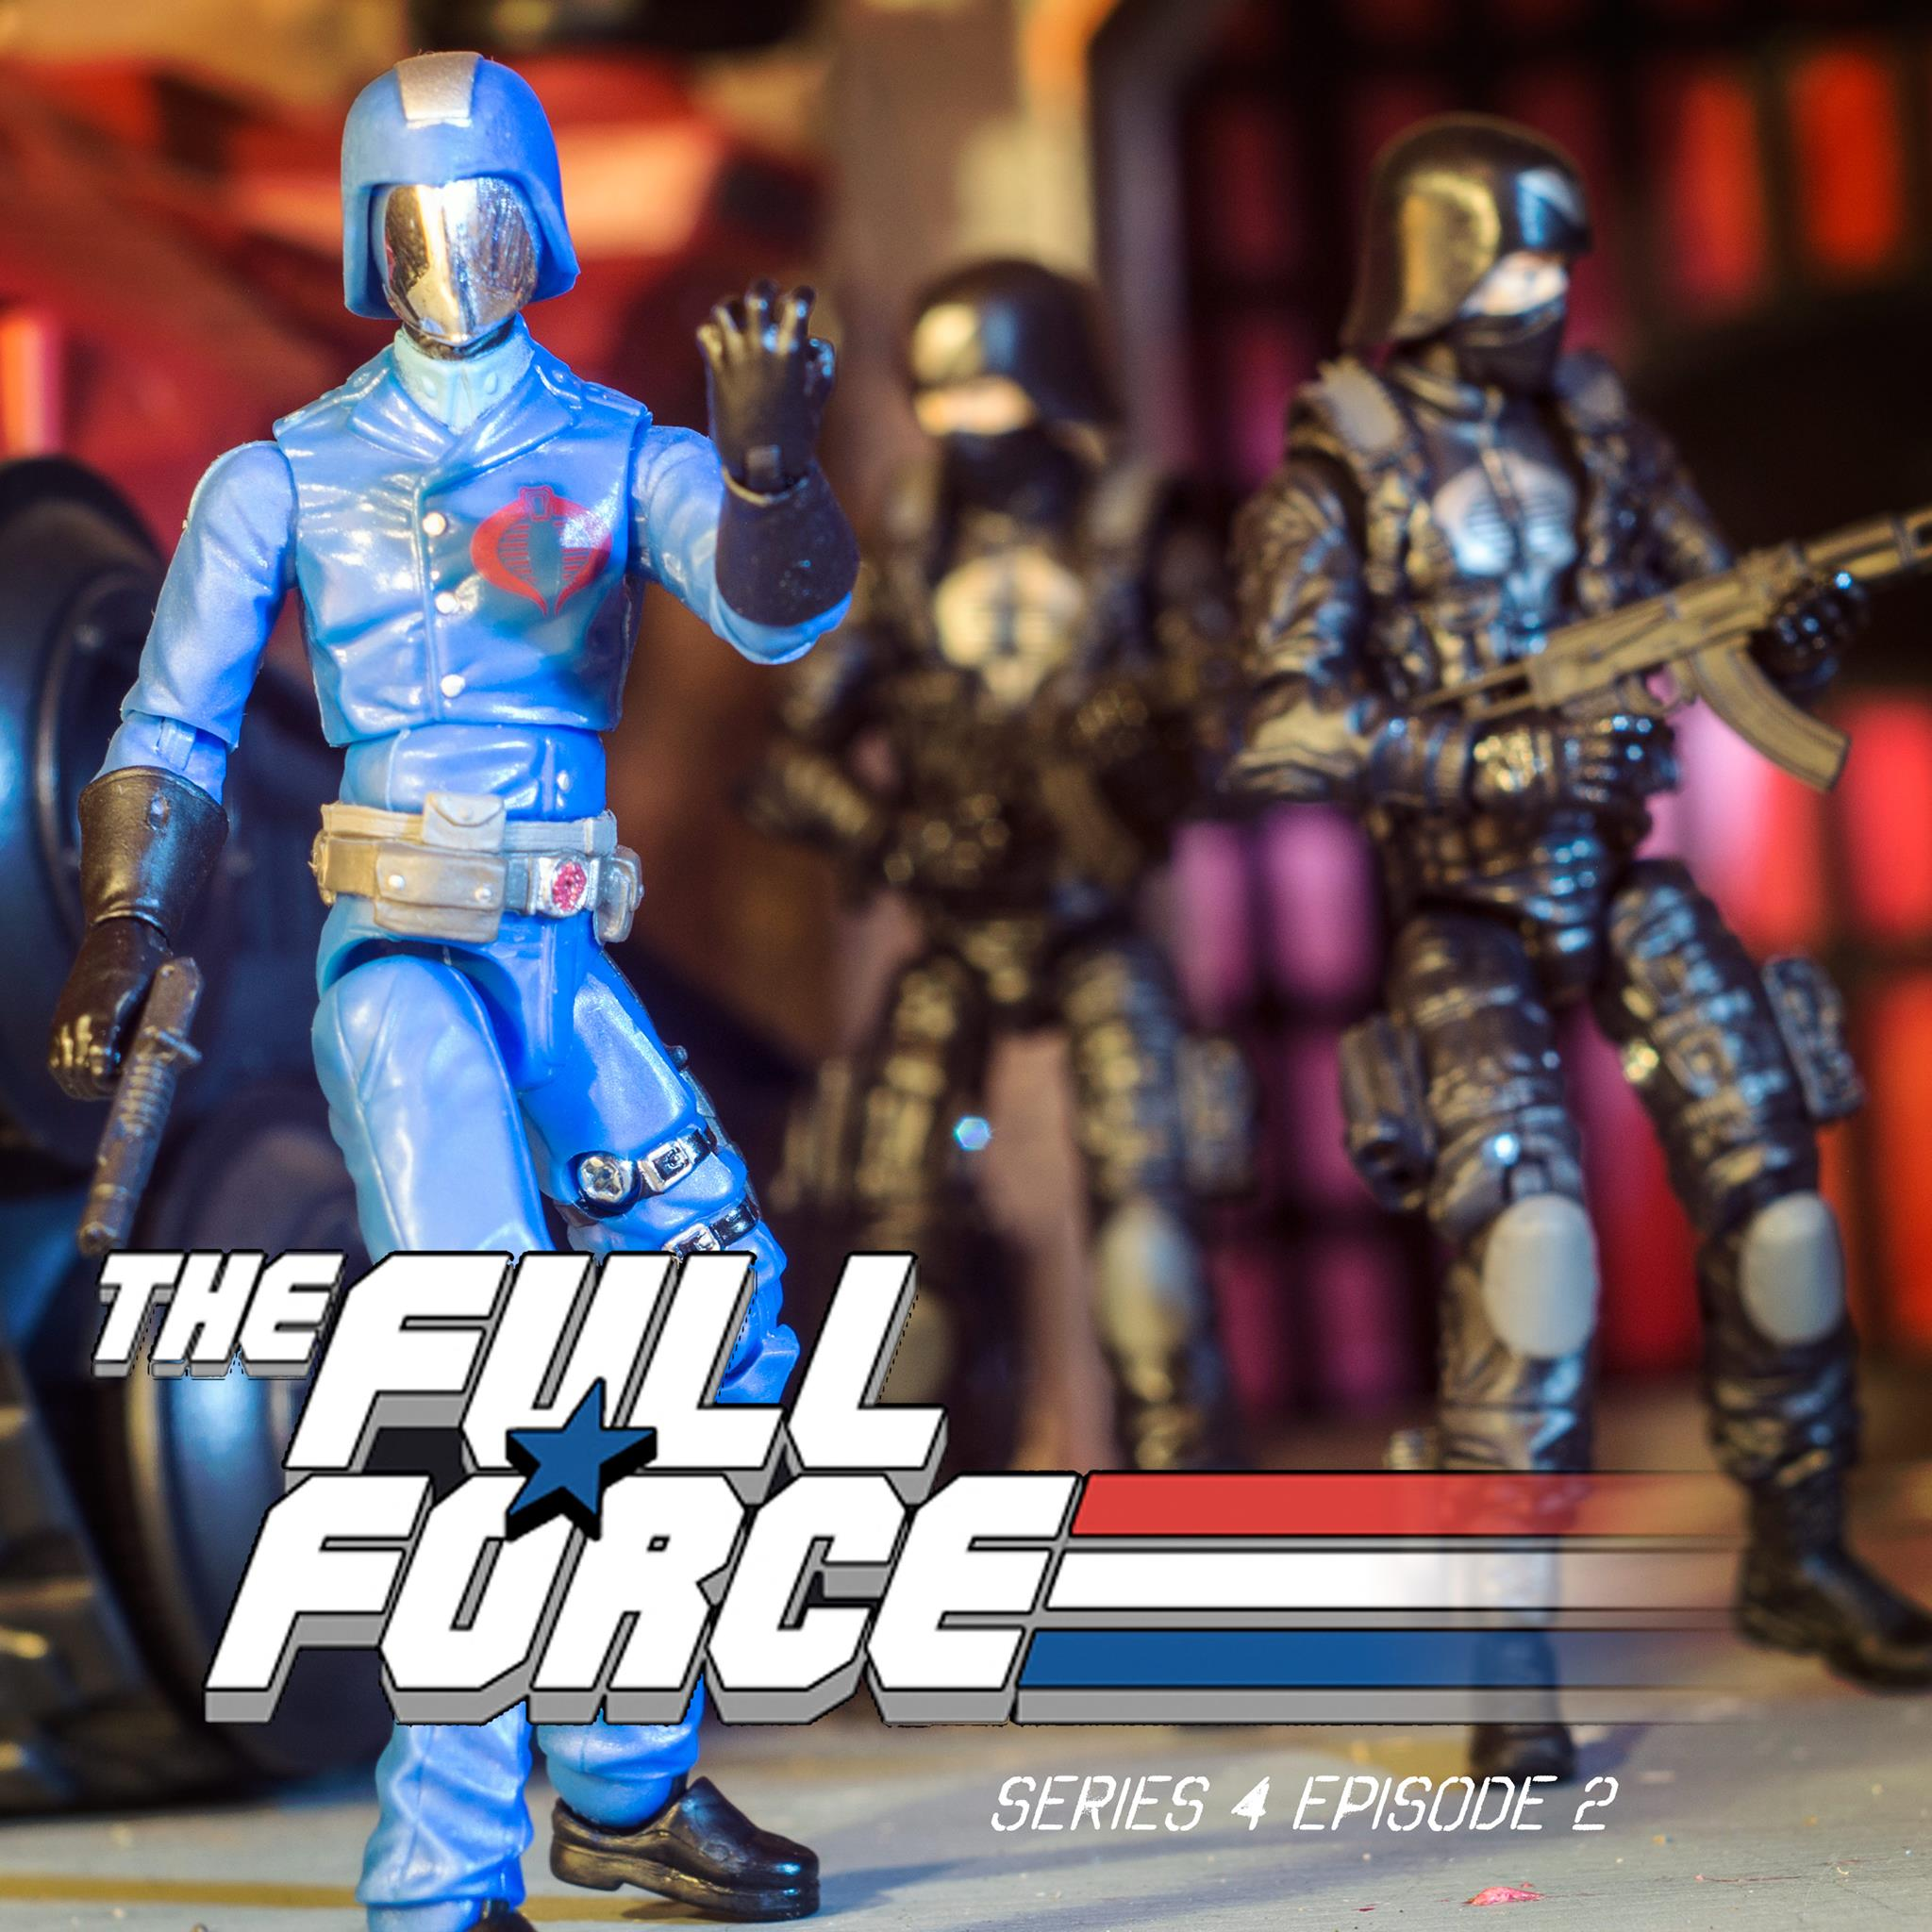 The Full Force Series 4 Episode 2